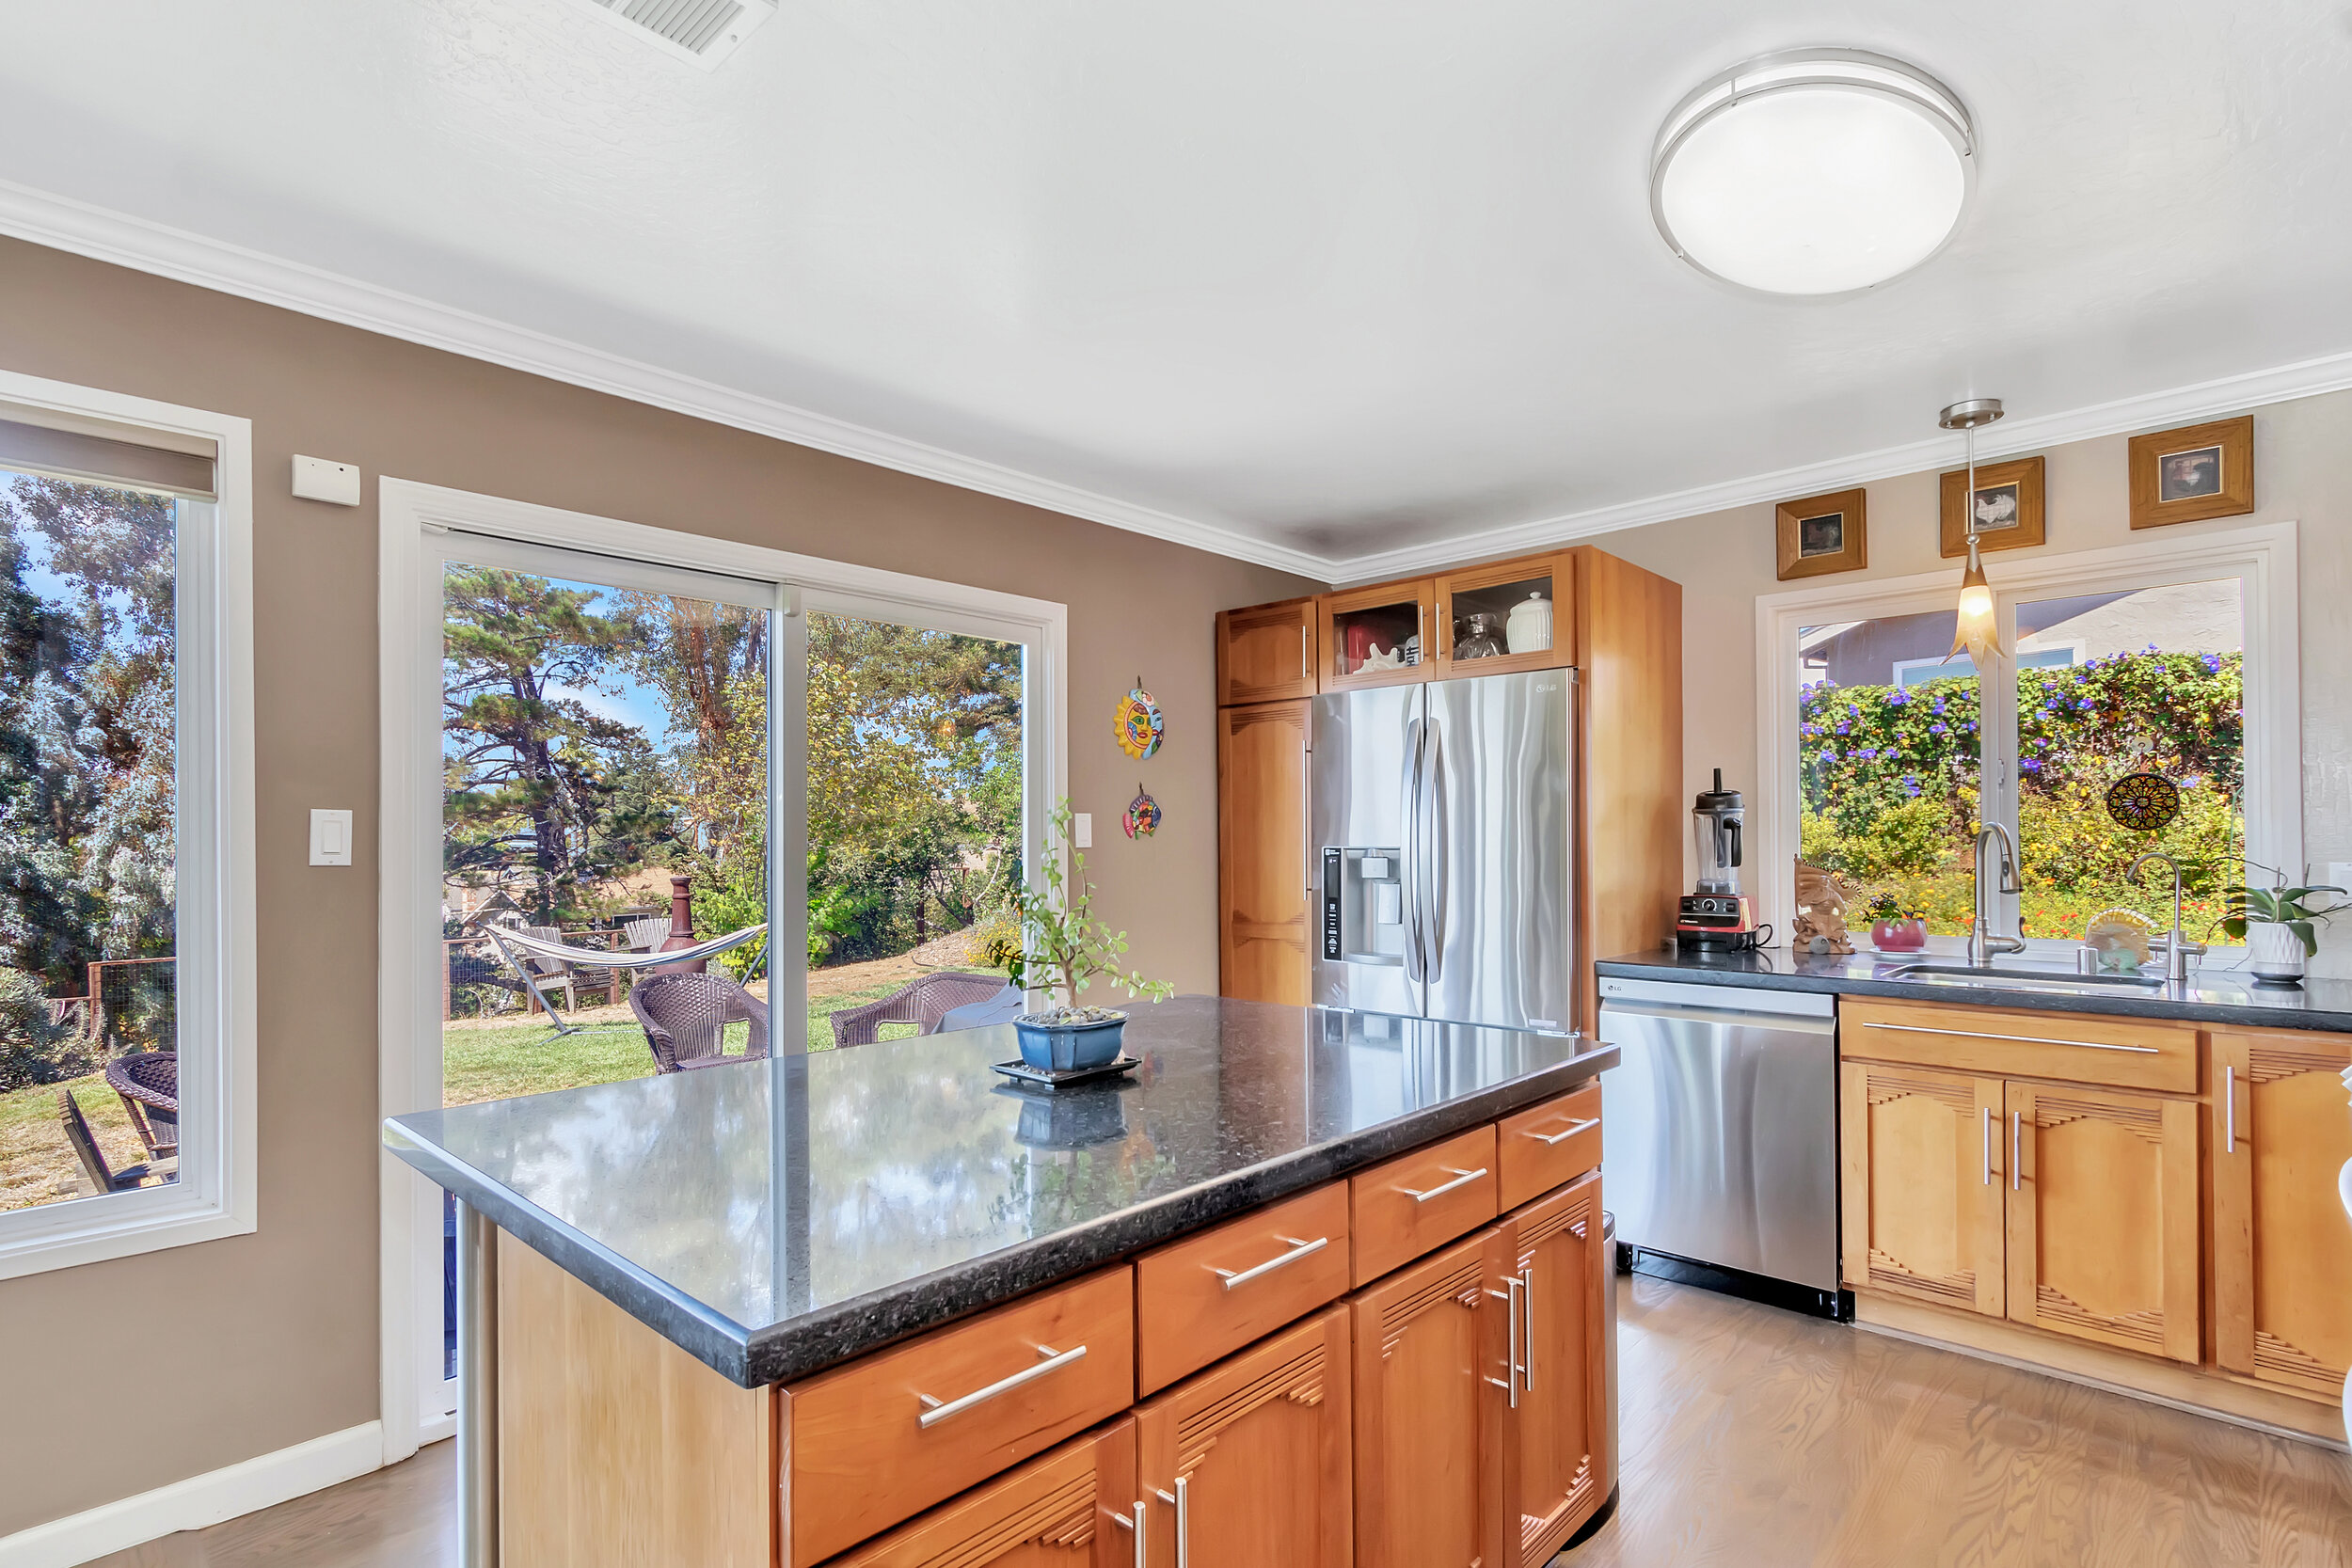 Remodeled kitchen features LG stainless steel appliances, genuine oak floors and beautiful black Sil stone countertops.